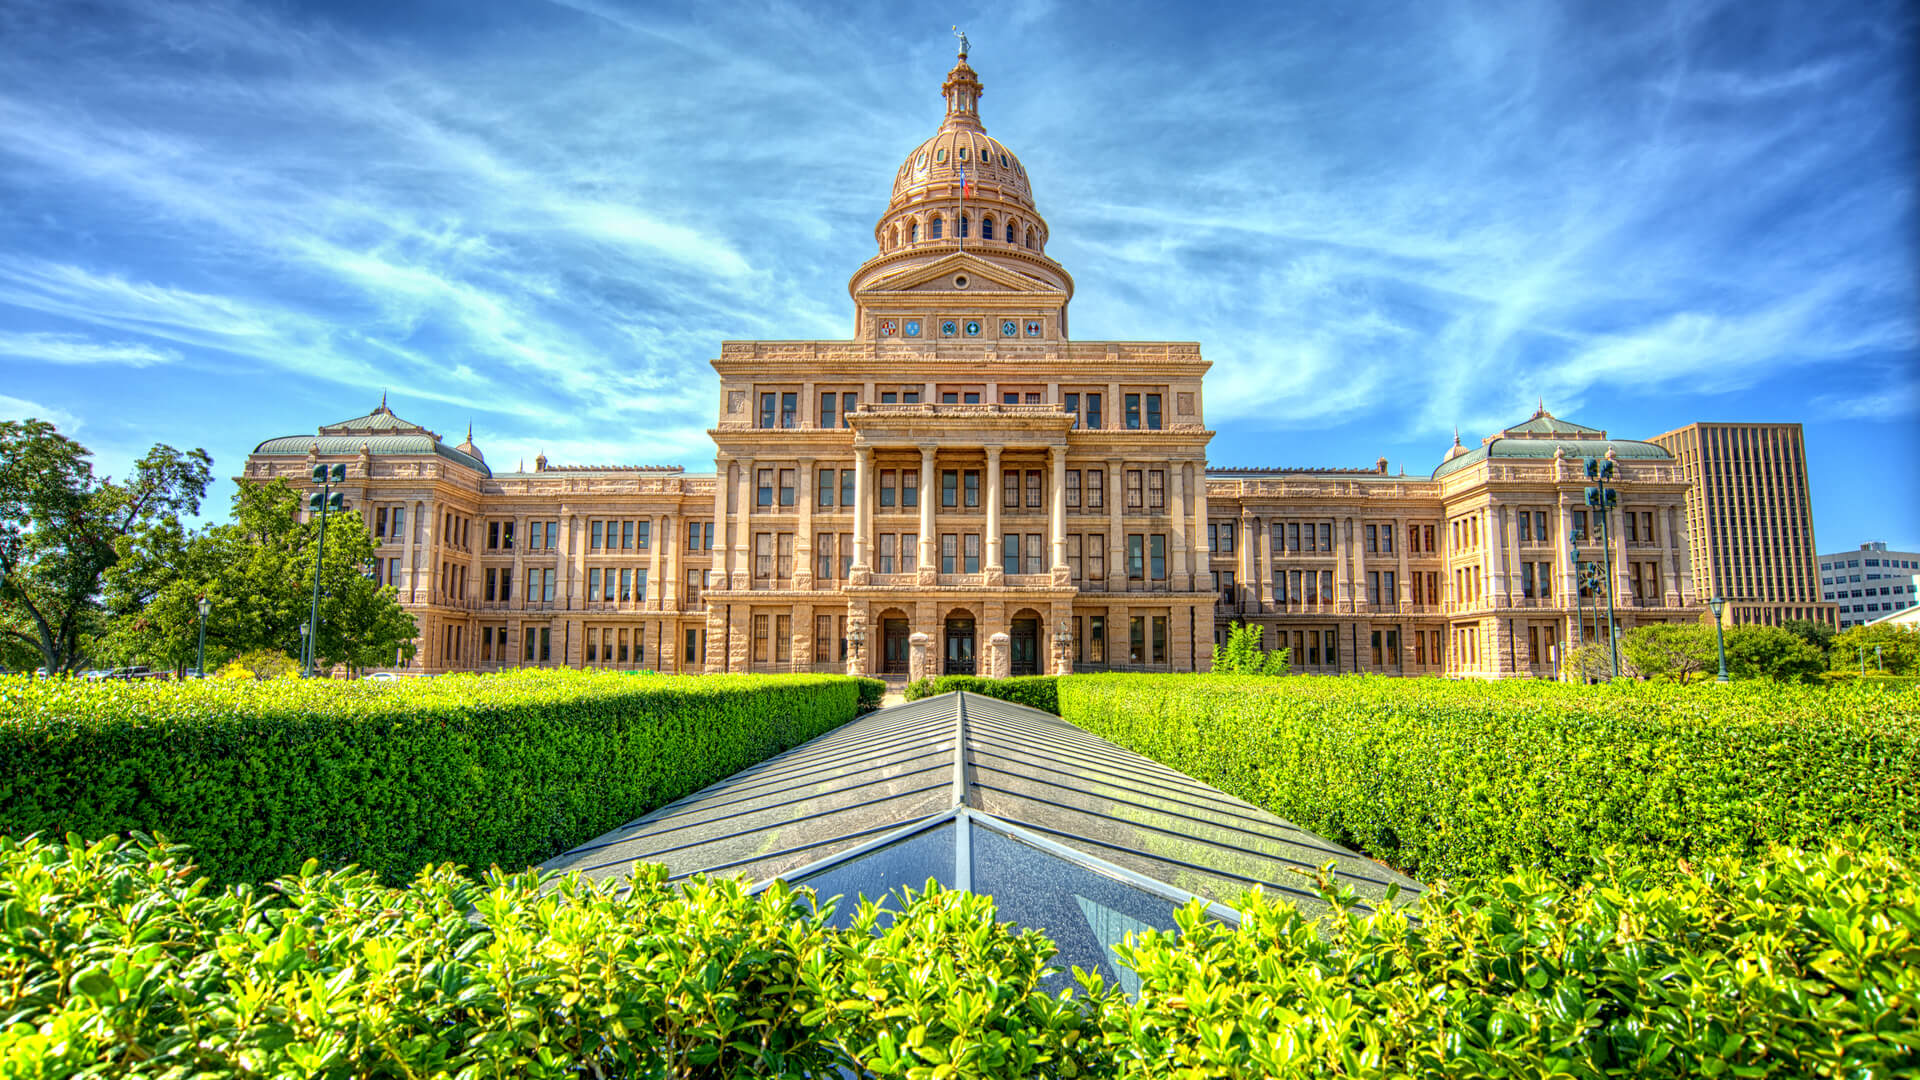 The Texas State Capitol Building in Austin, TX